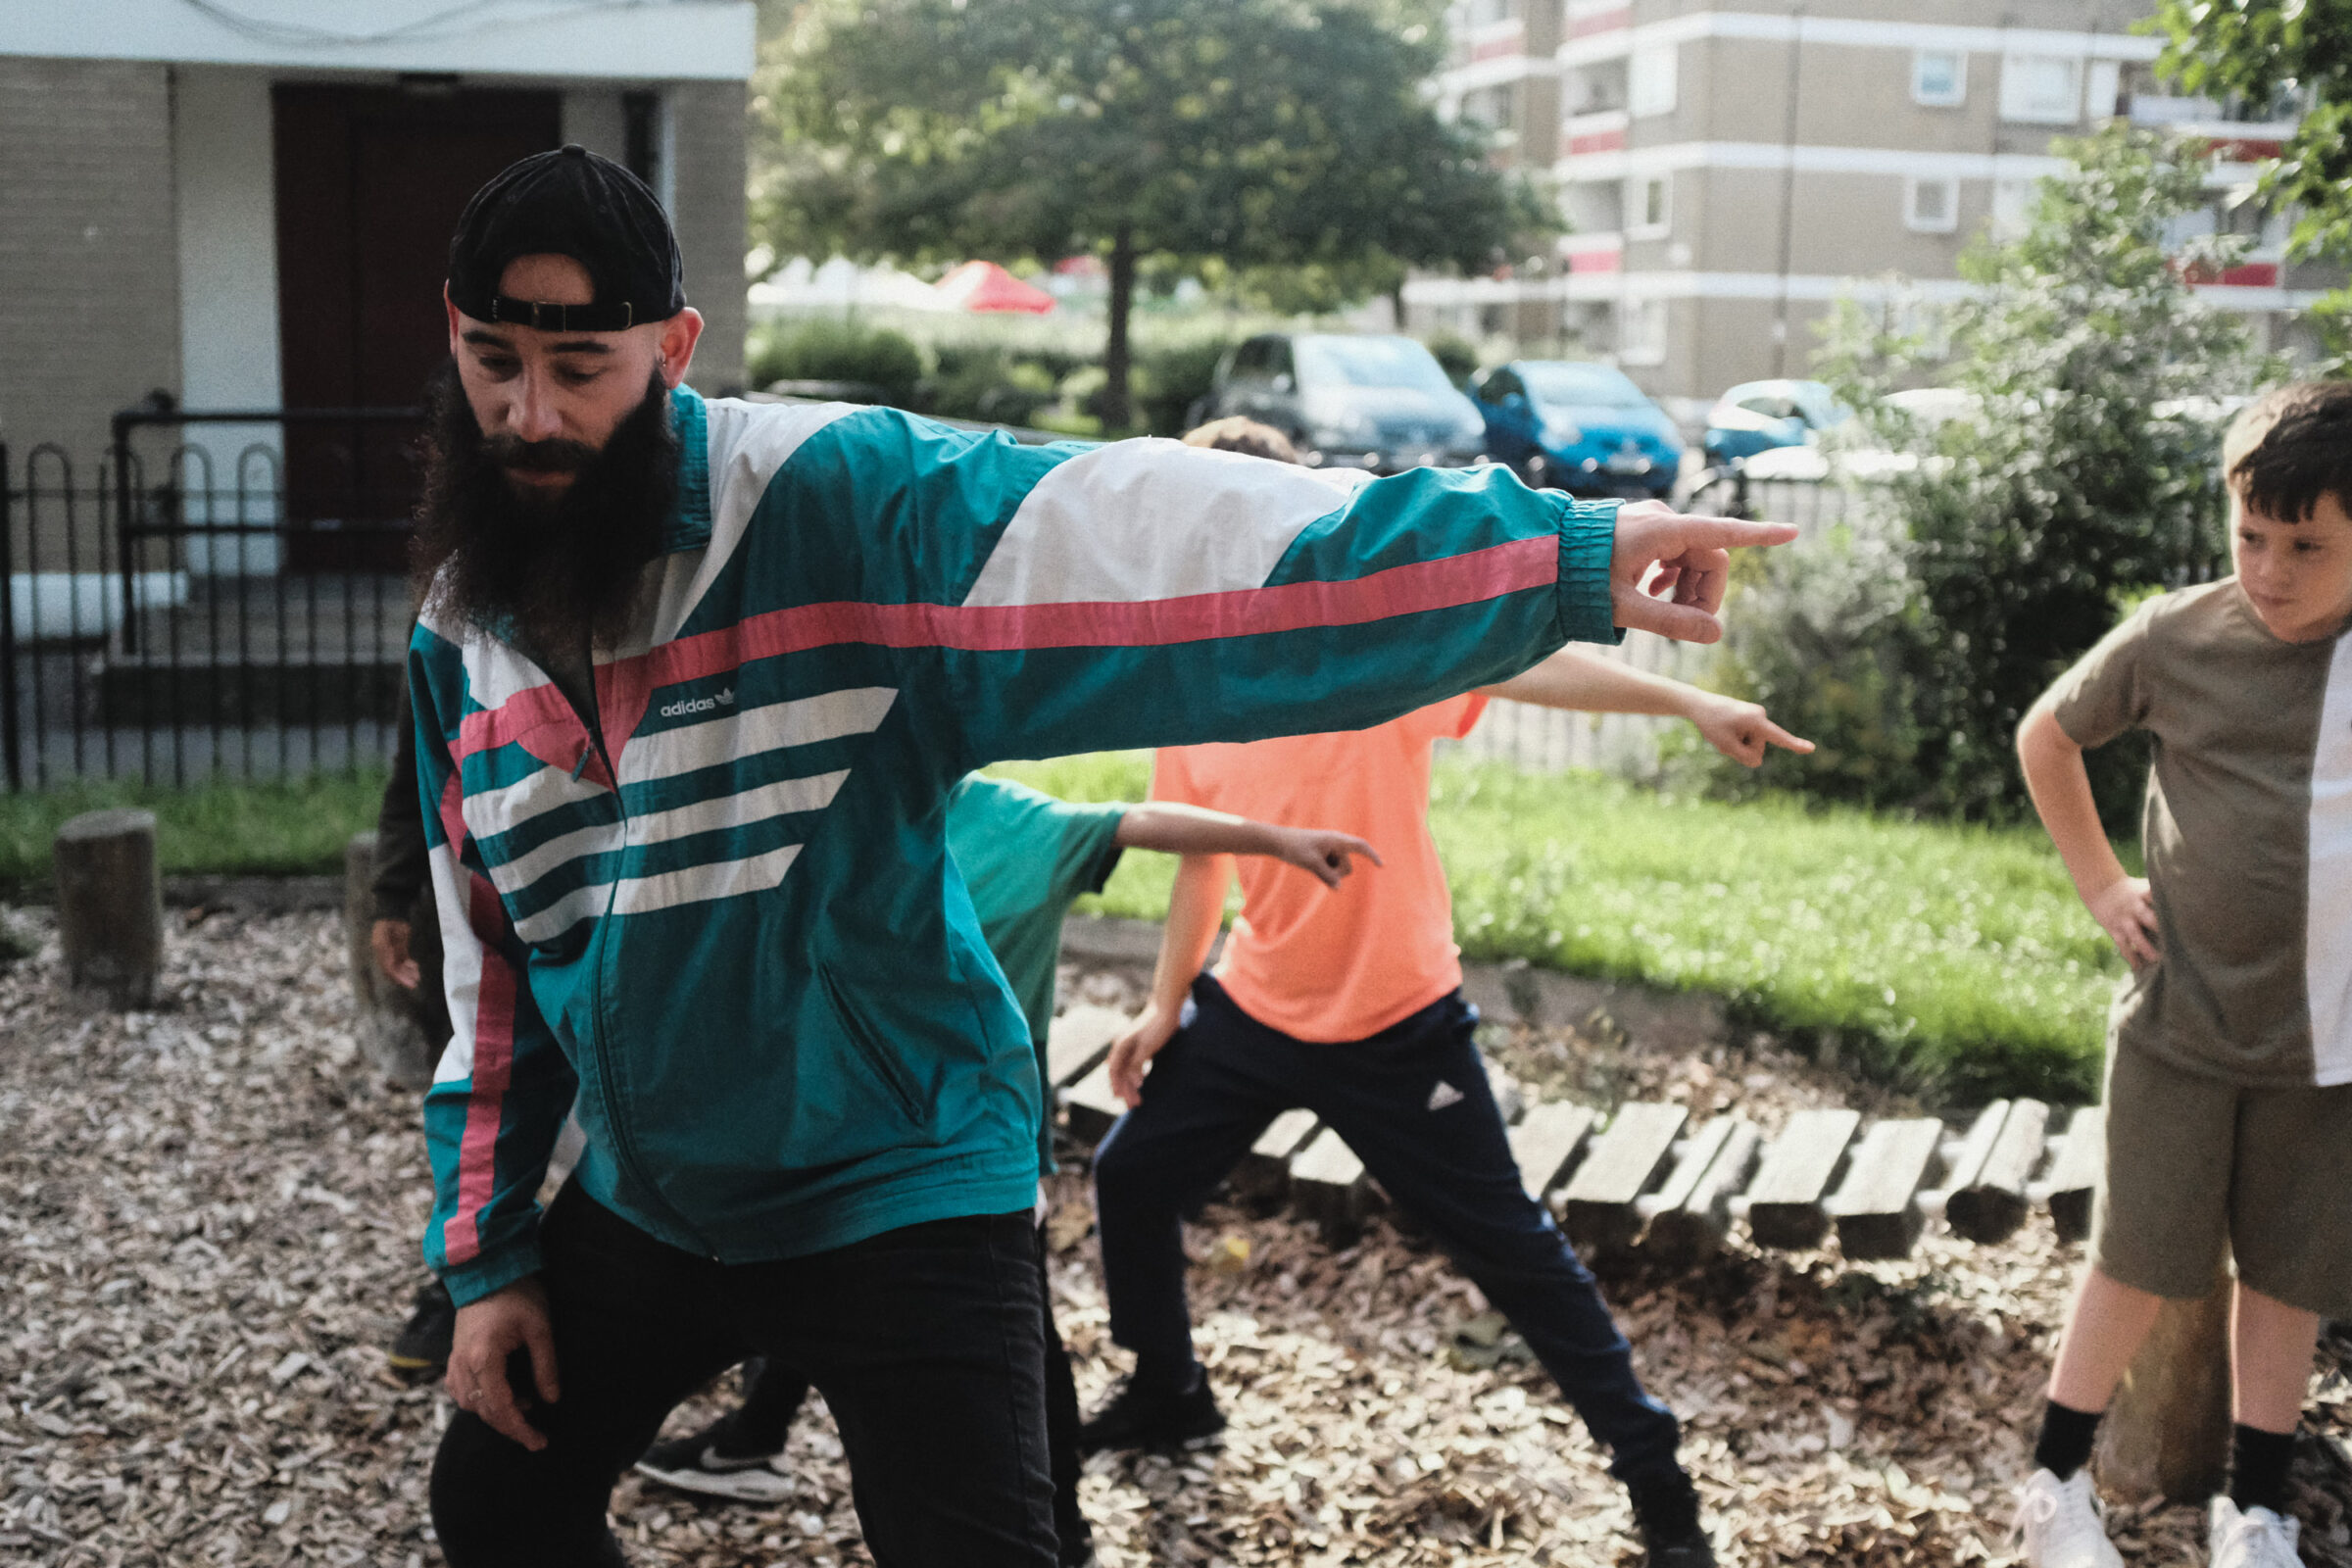 A dance artist works with the young people of Holyrood estate in Southampton. They are working in the park with arms outstretched